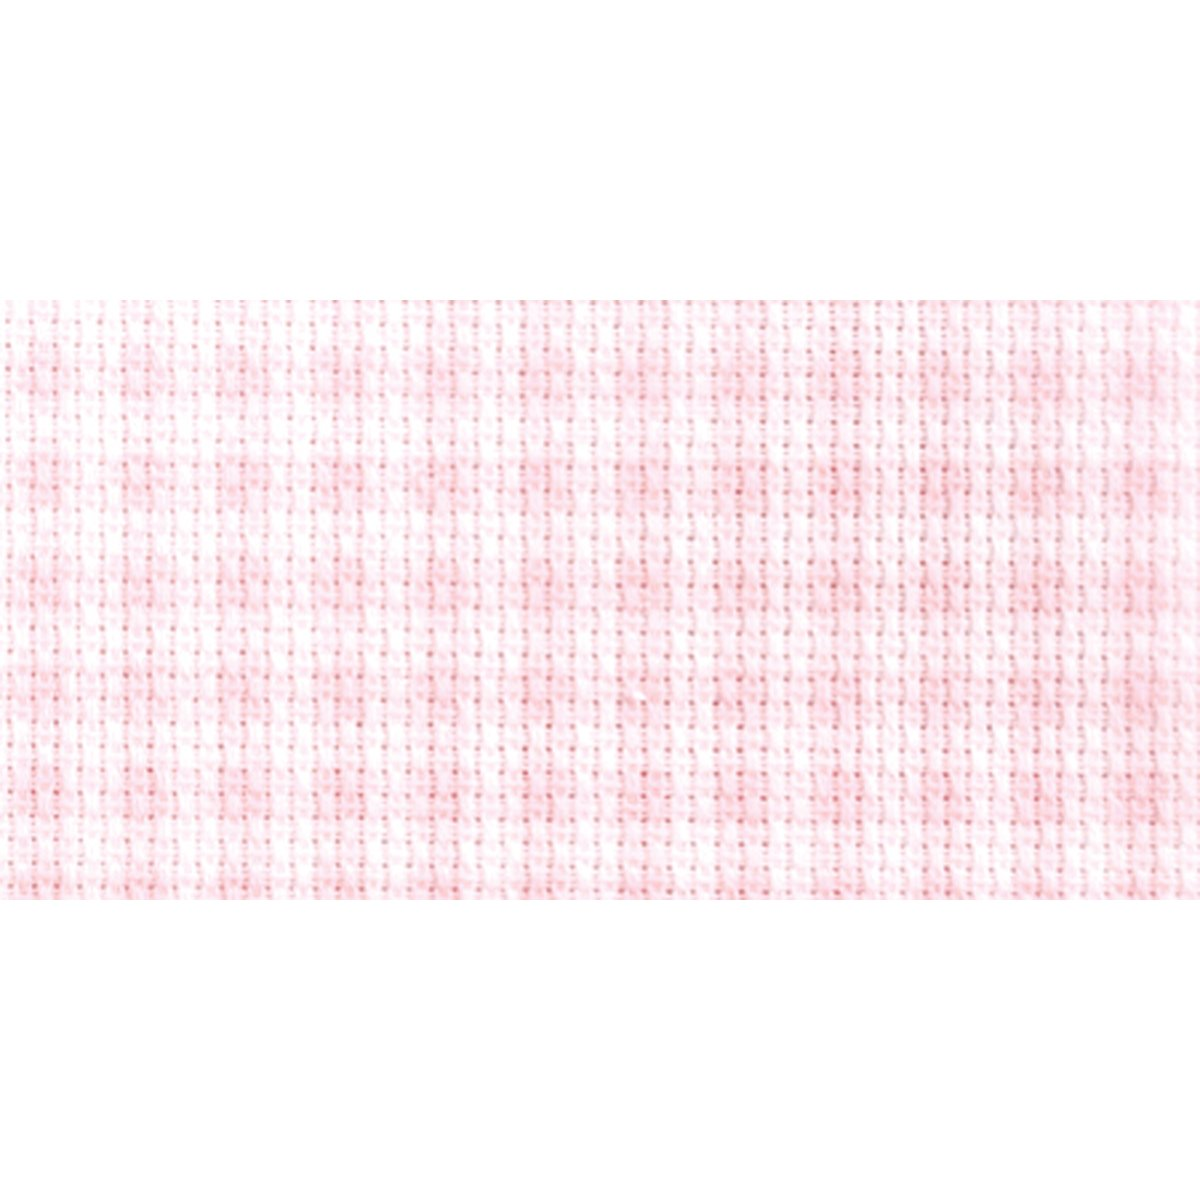 DMC DC27B-ROSE Impressions Aida Needlework Fabric, 14 by 18-Inch, White with Baby Pink Gingham, 14-Count Notions - In Network